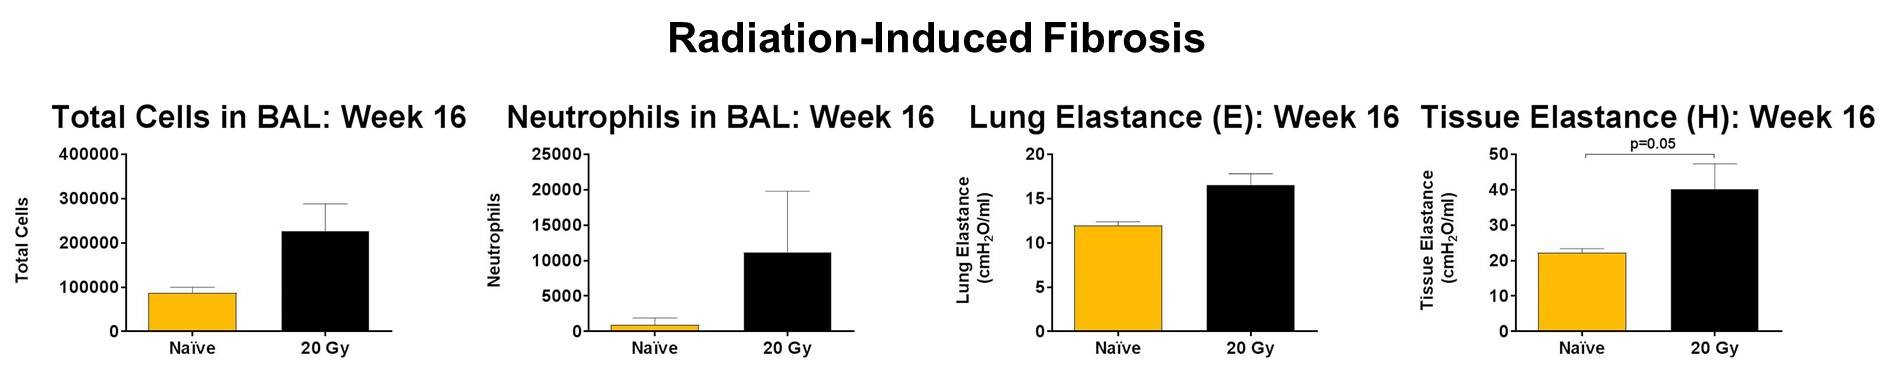 Total and inflammatory cells in addition to lung and tissue elastance are increased in mice exposed to 20 Gy irradiation